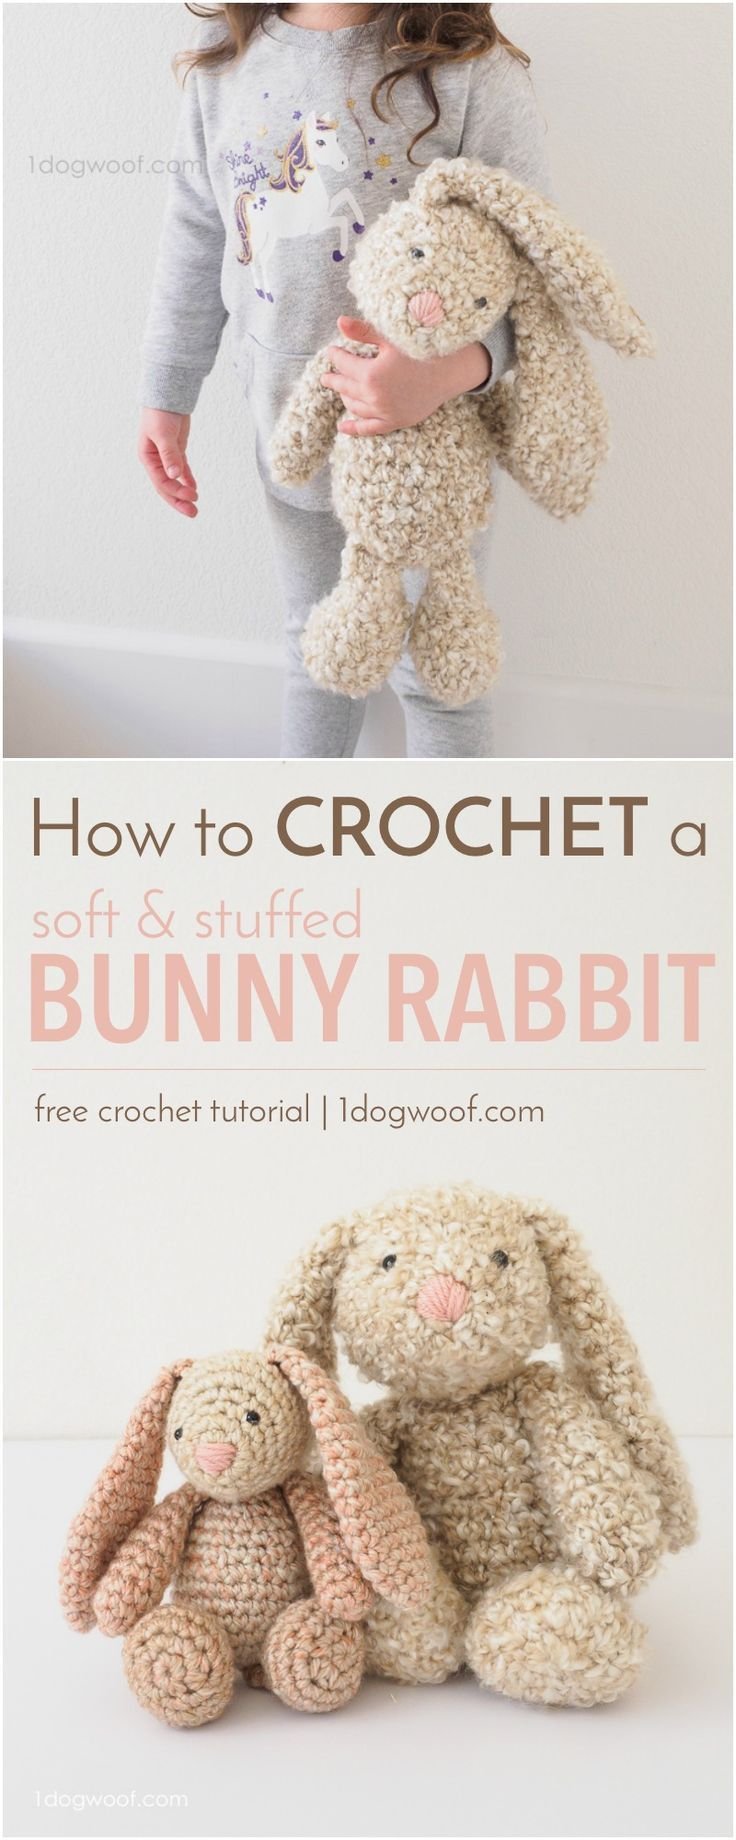 How to crochet a soft, squishy, floppy-eared, stuffed bunny rabbit using Lion Brand Homespun yarn. Perfect for Easter or a DIY baby shower gift!